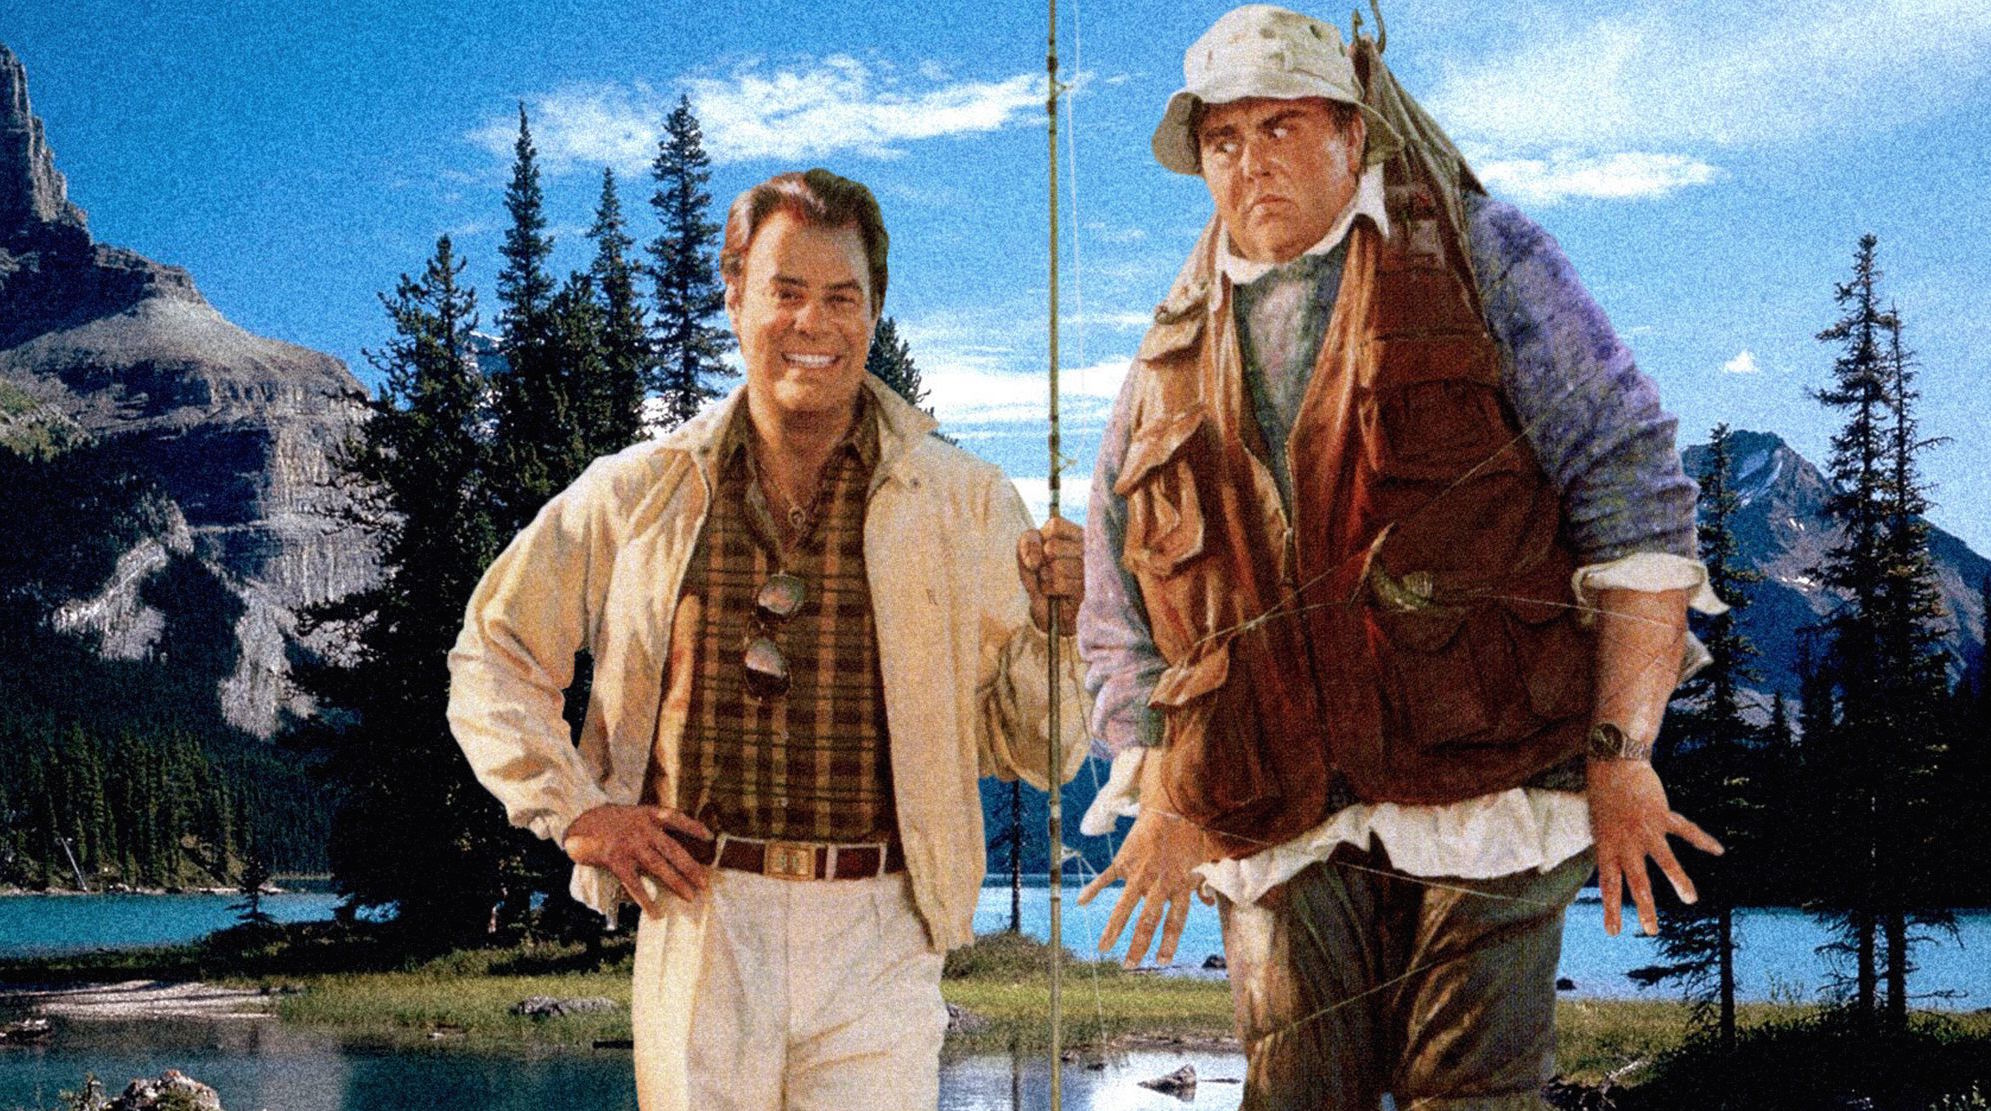 Illustration: Dan Aykroyd gleefully holding a fishing rod that has John Candy hooked and suspended who stares angrily at Dan.